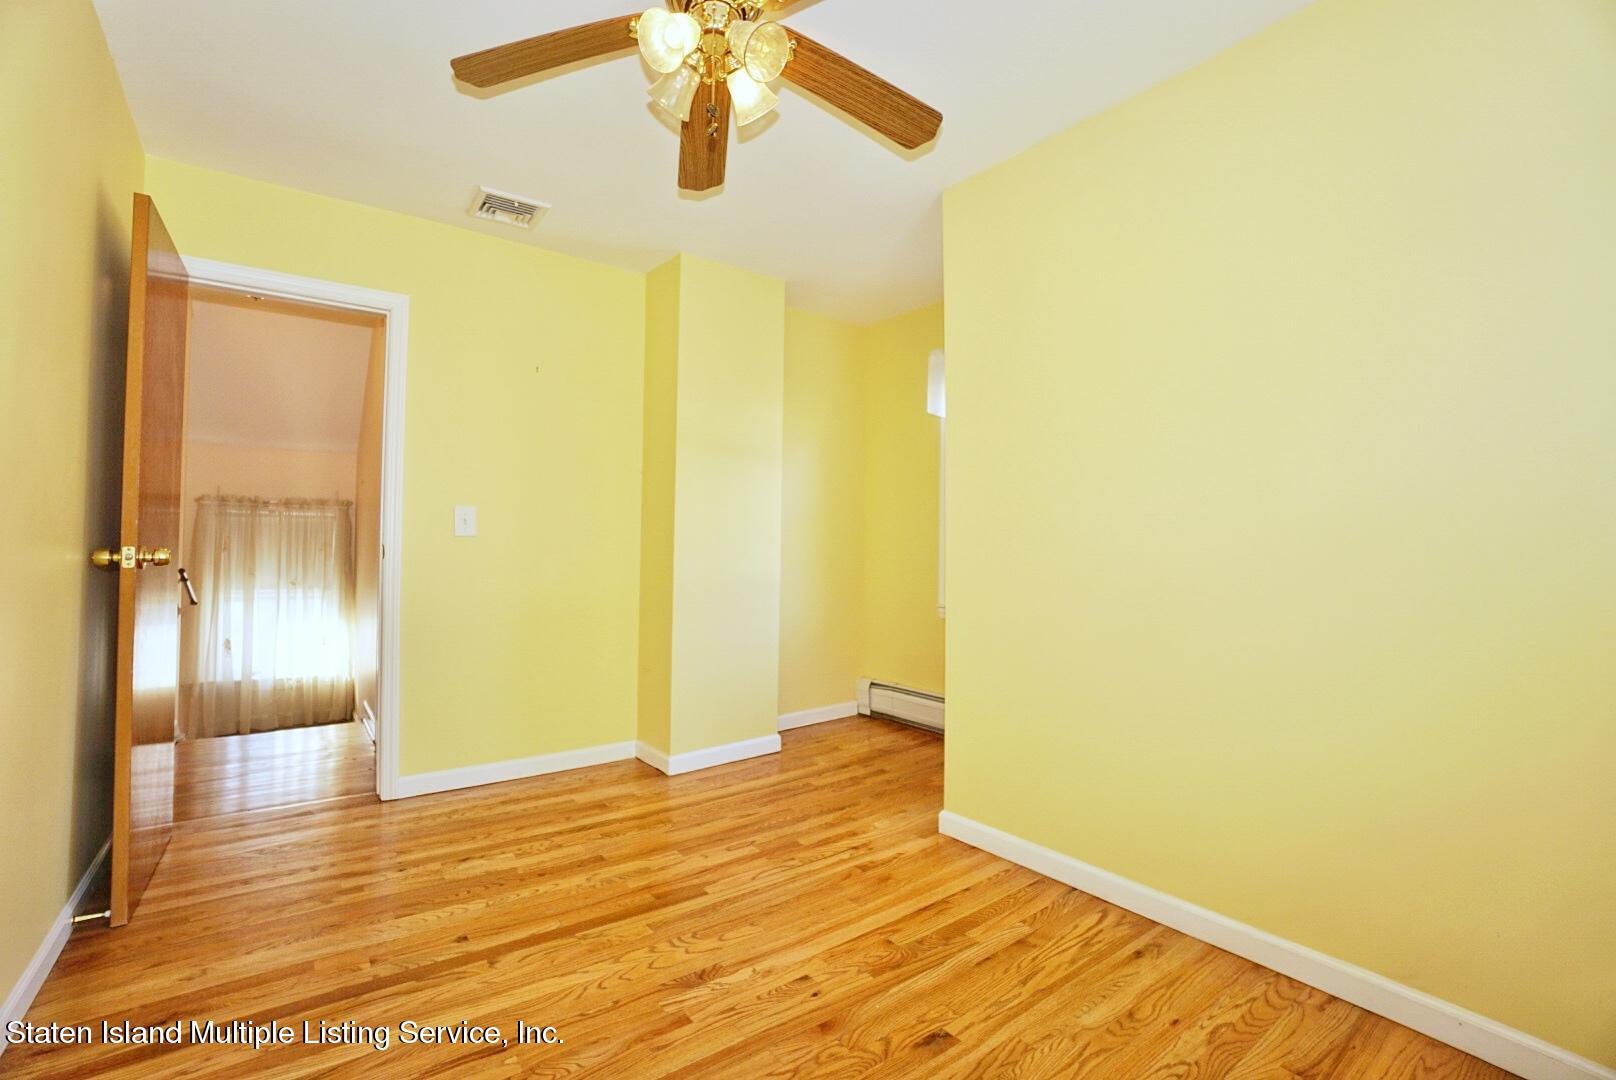 Single Family - Detached 97 Knox Place  Staten Island, NY 10314, MLS-1143147-11